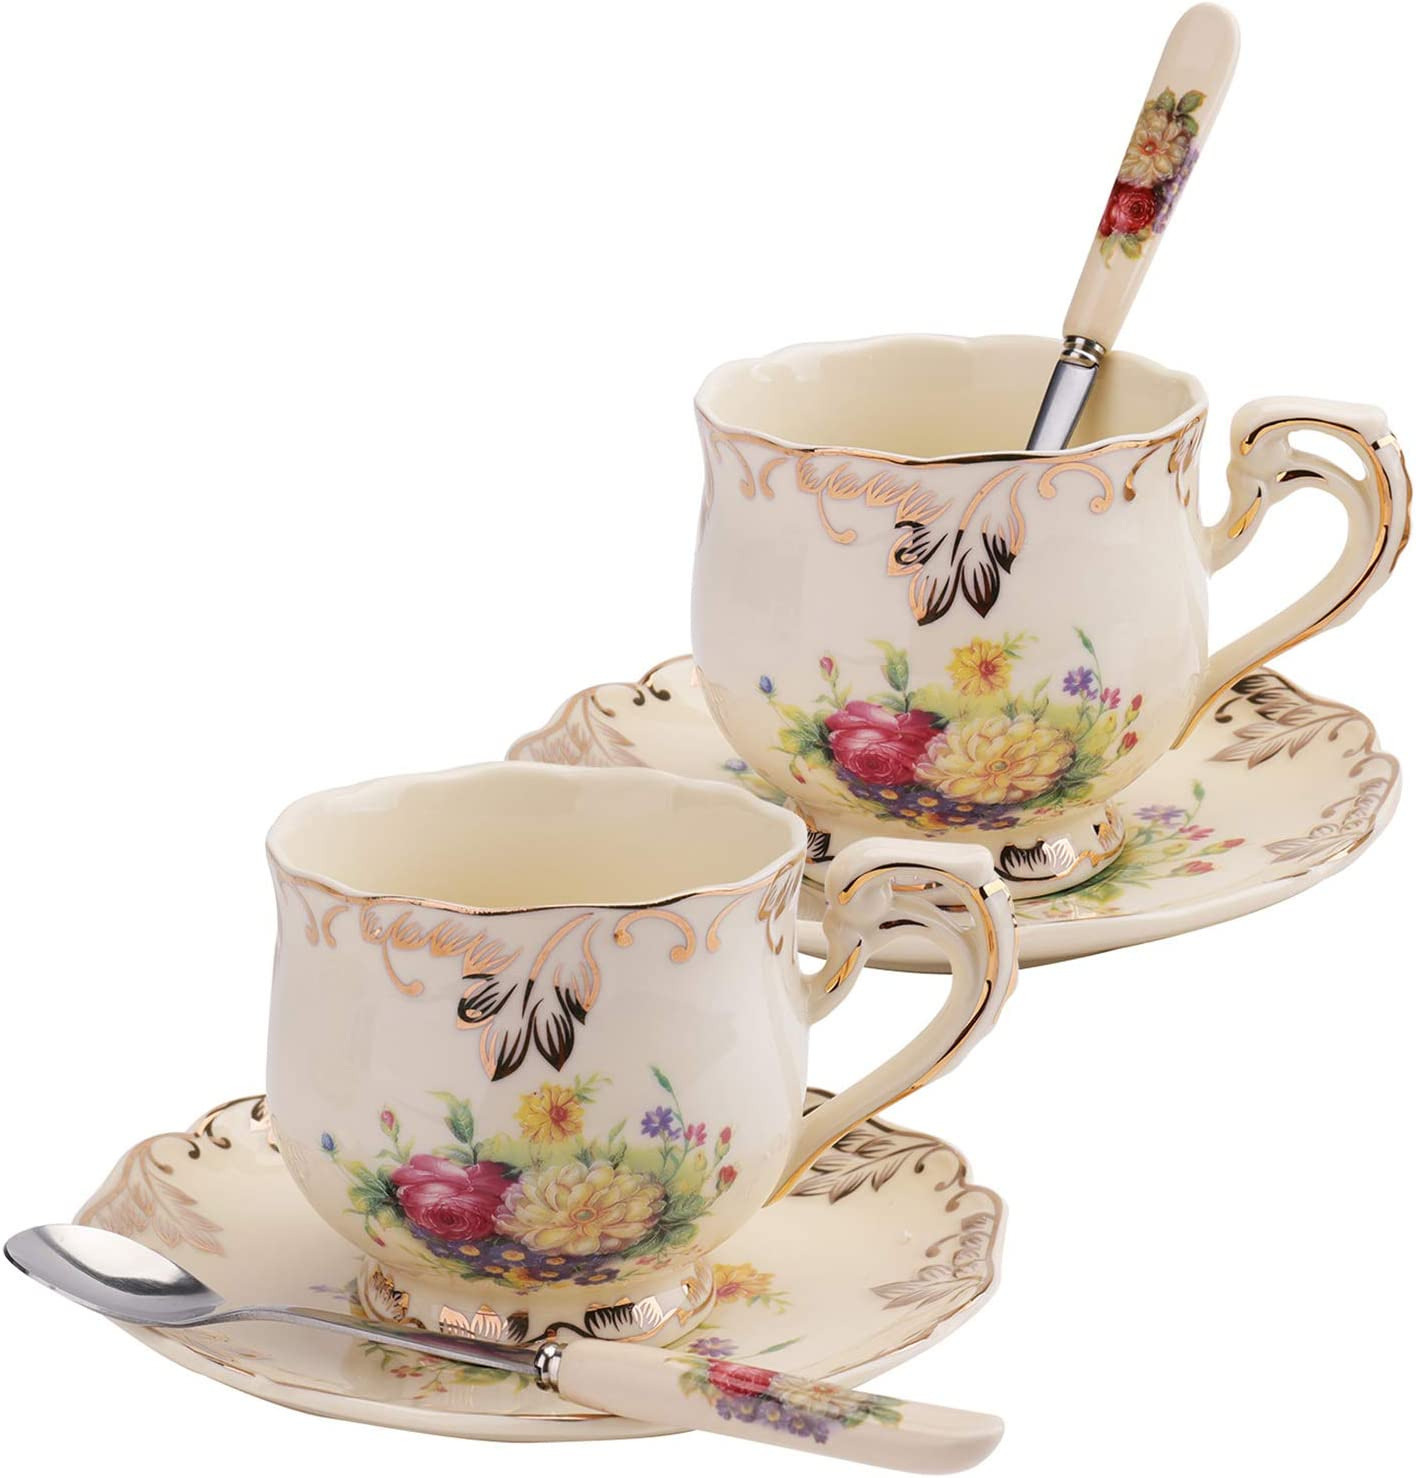 Foraineam Set of 2 Tea Cup and Saucer, 8 oz. Flowering Shrubs Ivory Ceramic Coffee Cup Fancy Floral Porcelain Tea Cup Set with Saucer and Spoon